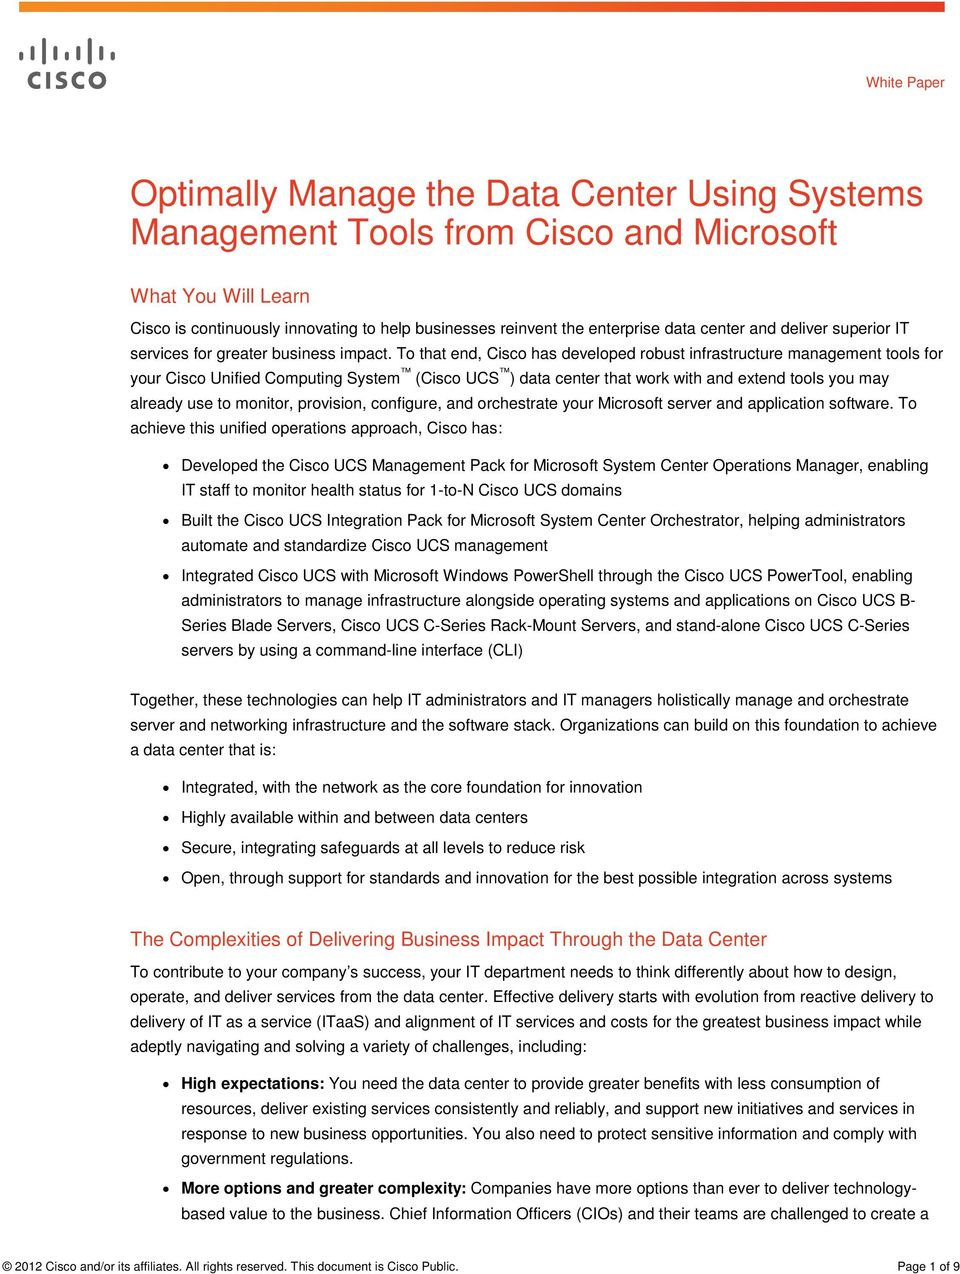 To that end, Cisco has developed robust infrastructure management tools for your Cisco Unified Computing System (Cisco UCS ) data center that work with and extend tools you may already use to